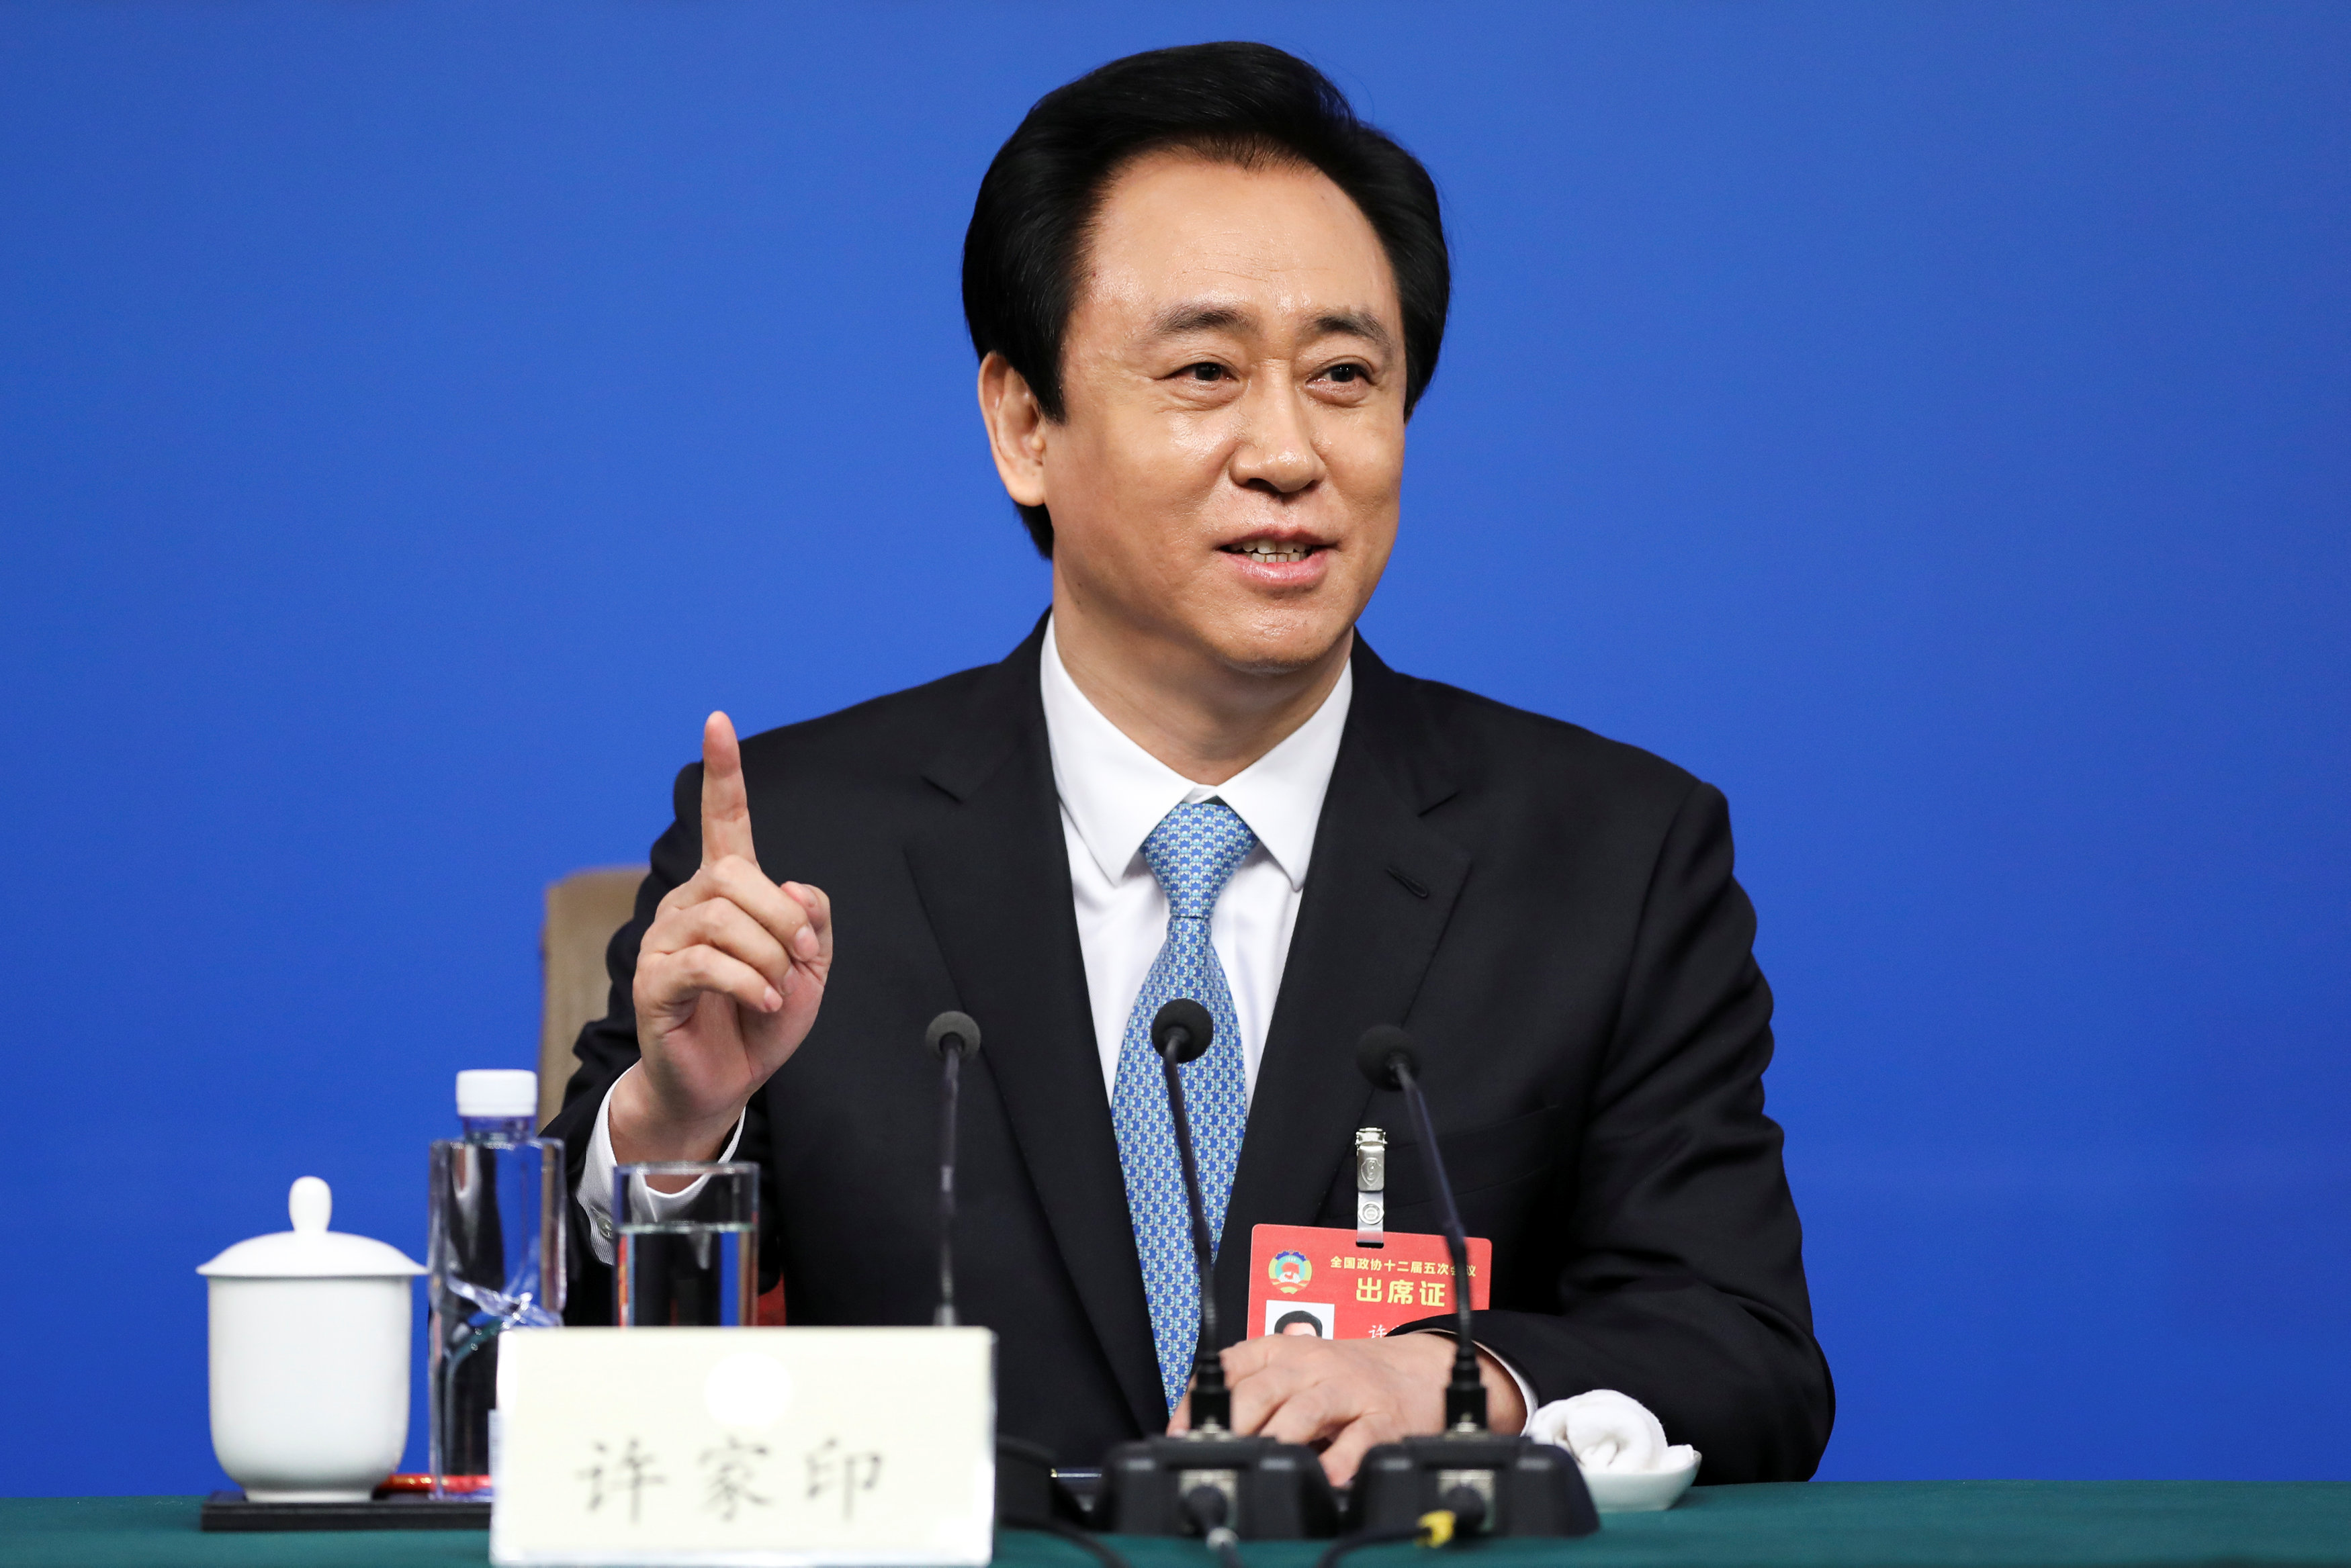 Evergrande Group chairman Xu Jiayin gestures during a press conference for the Fifth Session of the 12th CPPCC National Committee in Beijing, China March 9, 2017. — Reuters pic